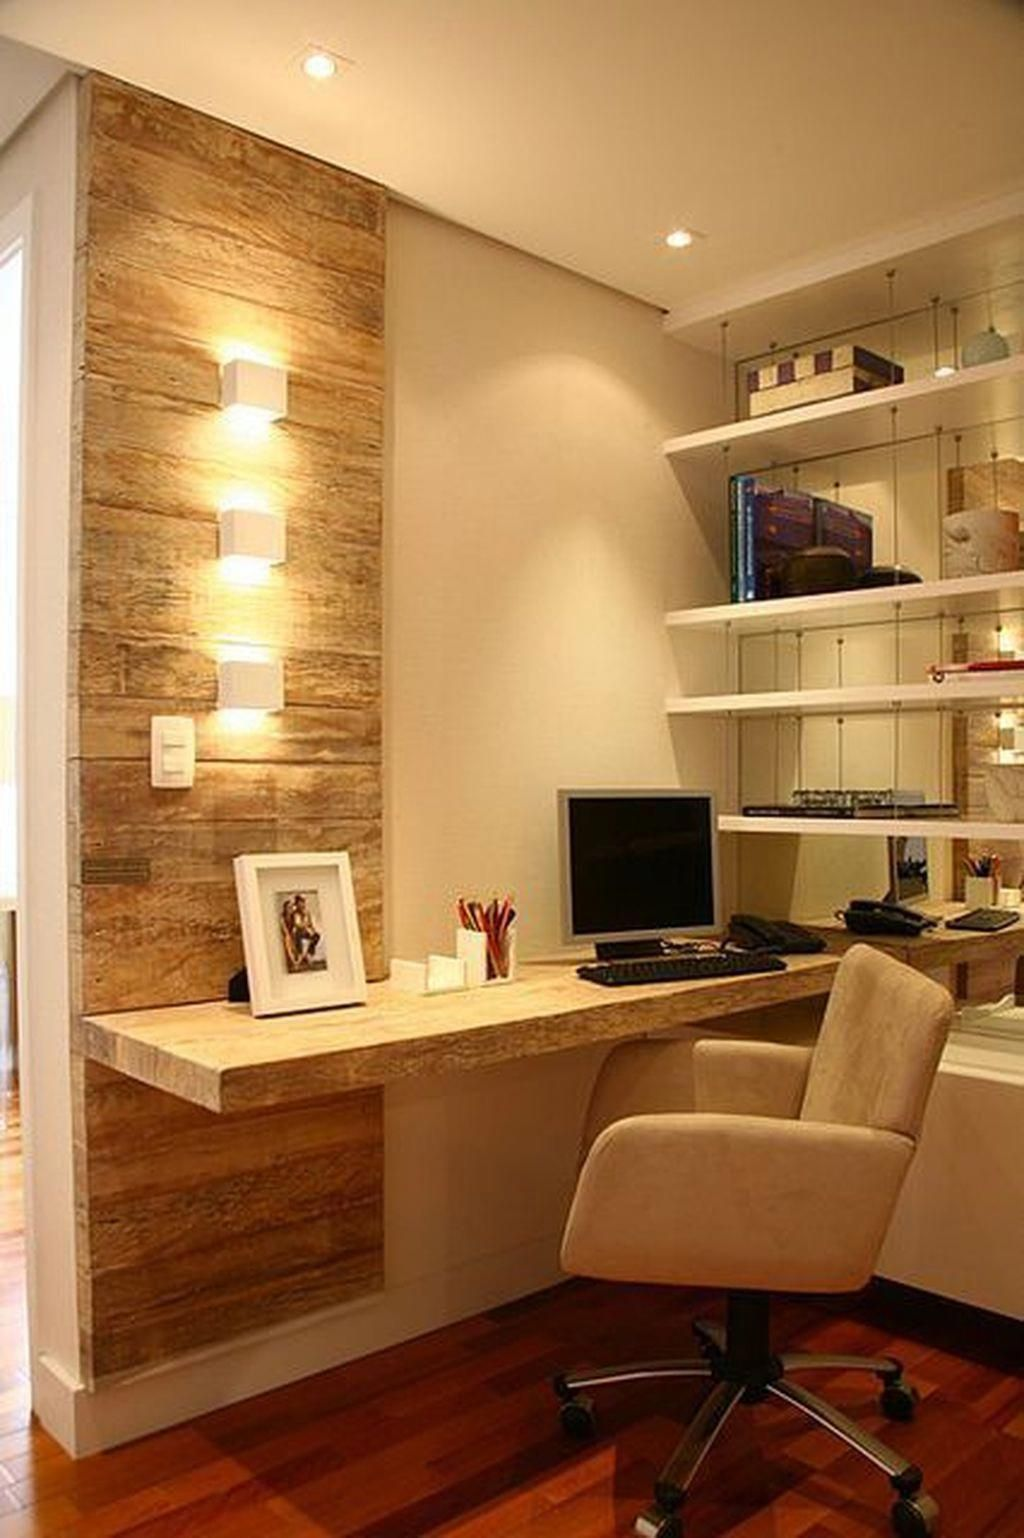 Home-office-design-ideen awesome  cool home office design ideas for small apartment